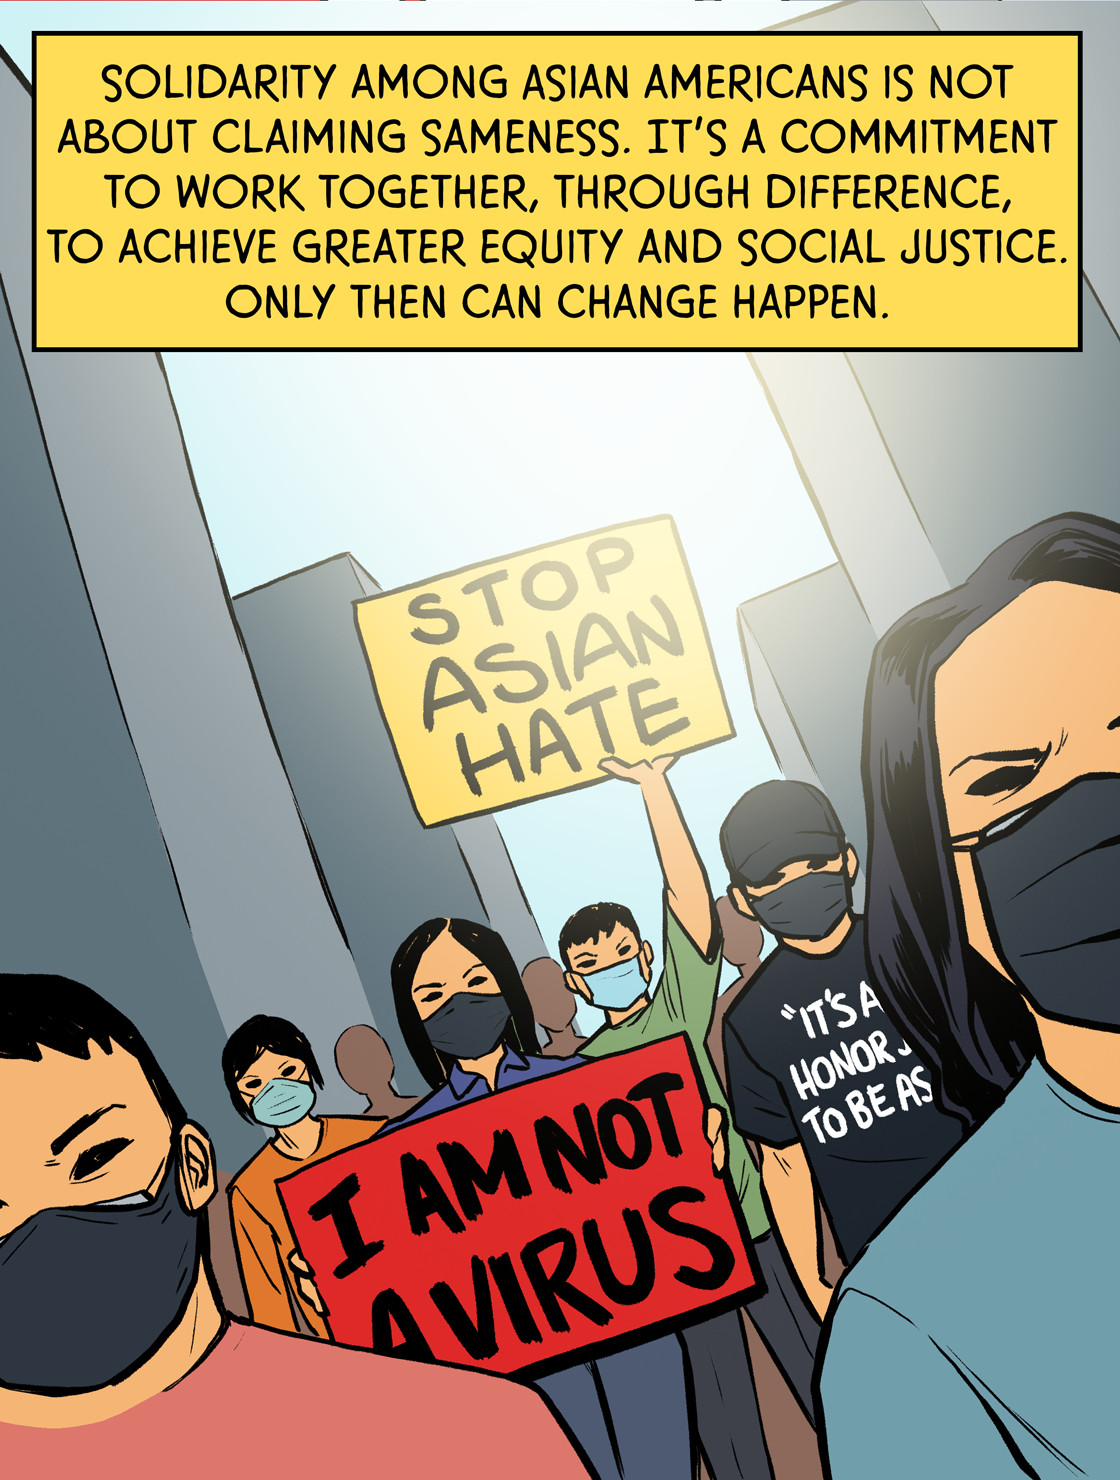 Solidarity among Asian Americans is not about claiming sameness. It is a commitment to work together in and through difference to achieve greater equity and social justice. Only then can change happen.